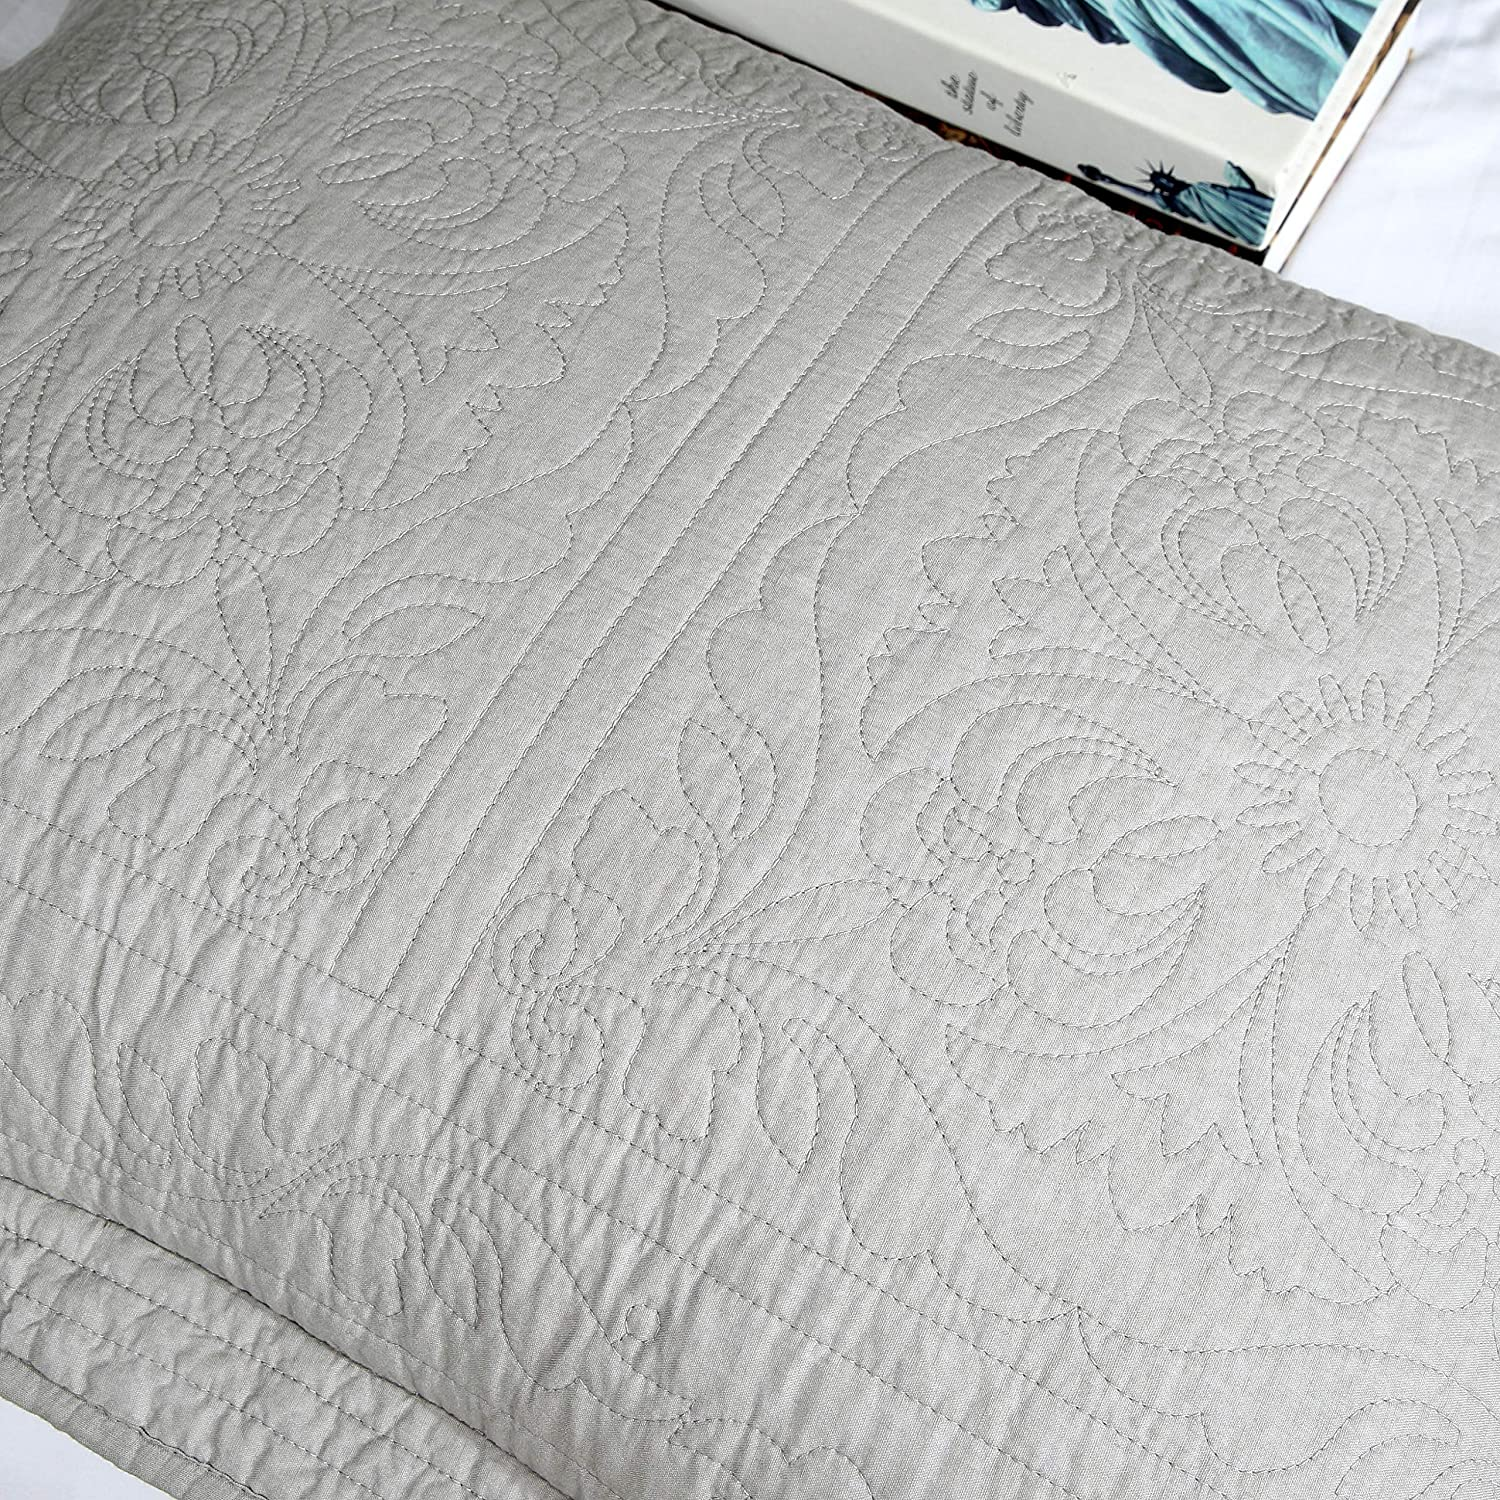 WINLIFE 100/% Cotton Quilted Pillow Sham Floral Printed Pillow Cover White